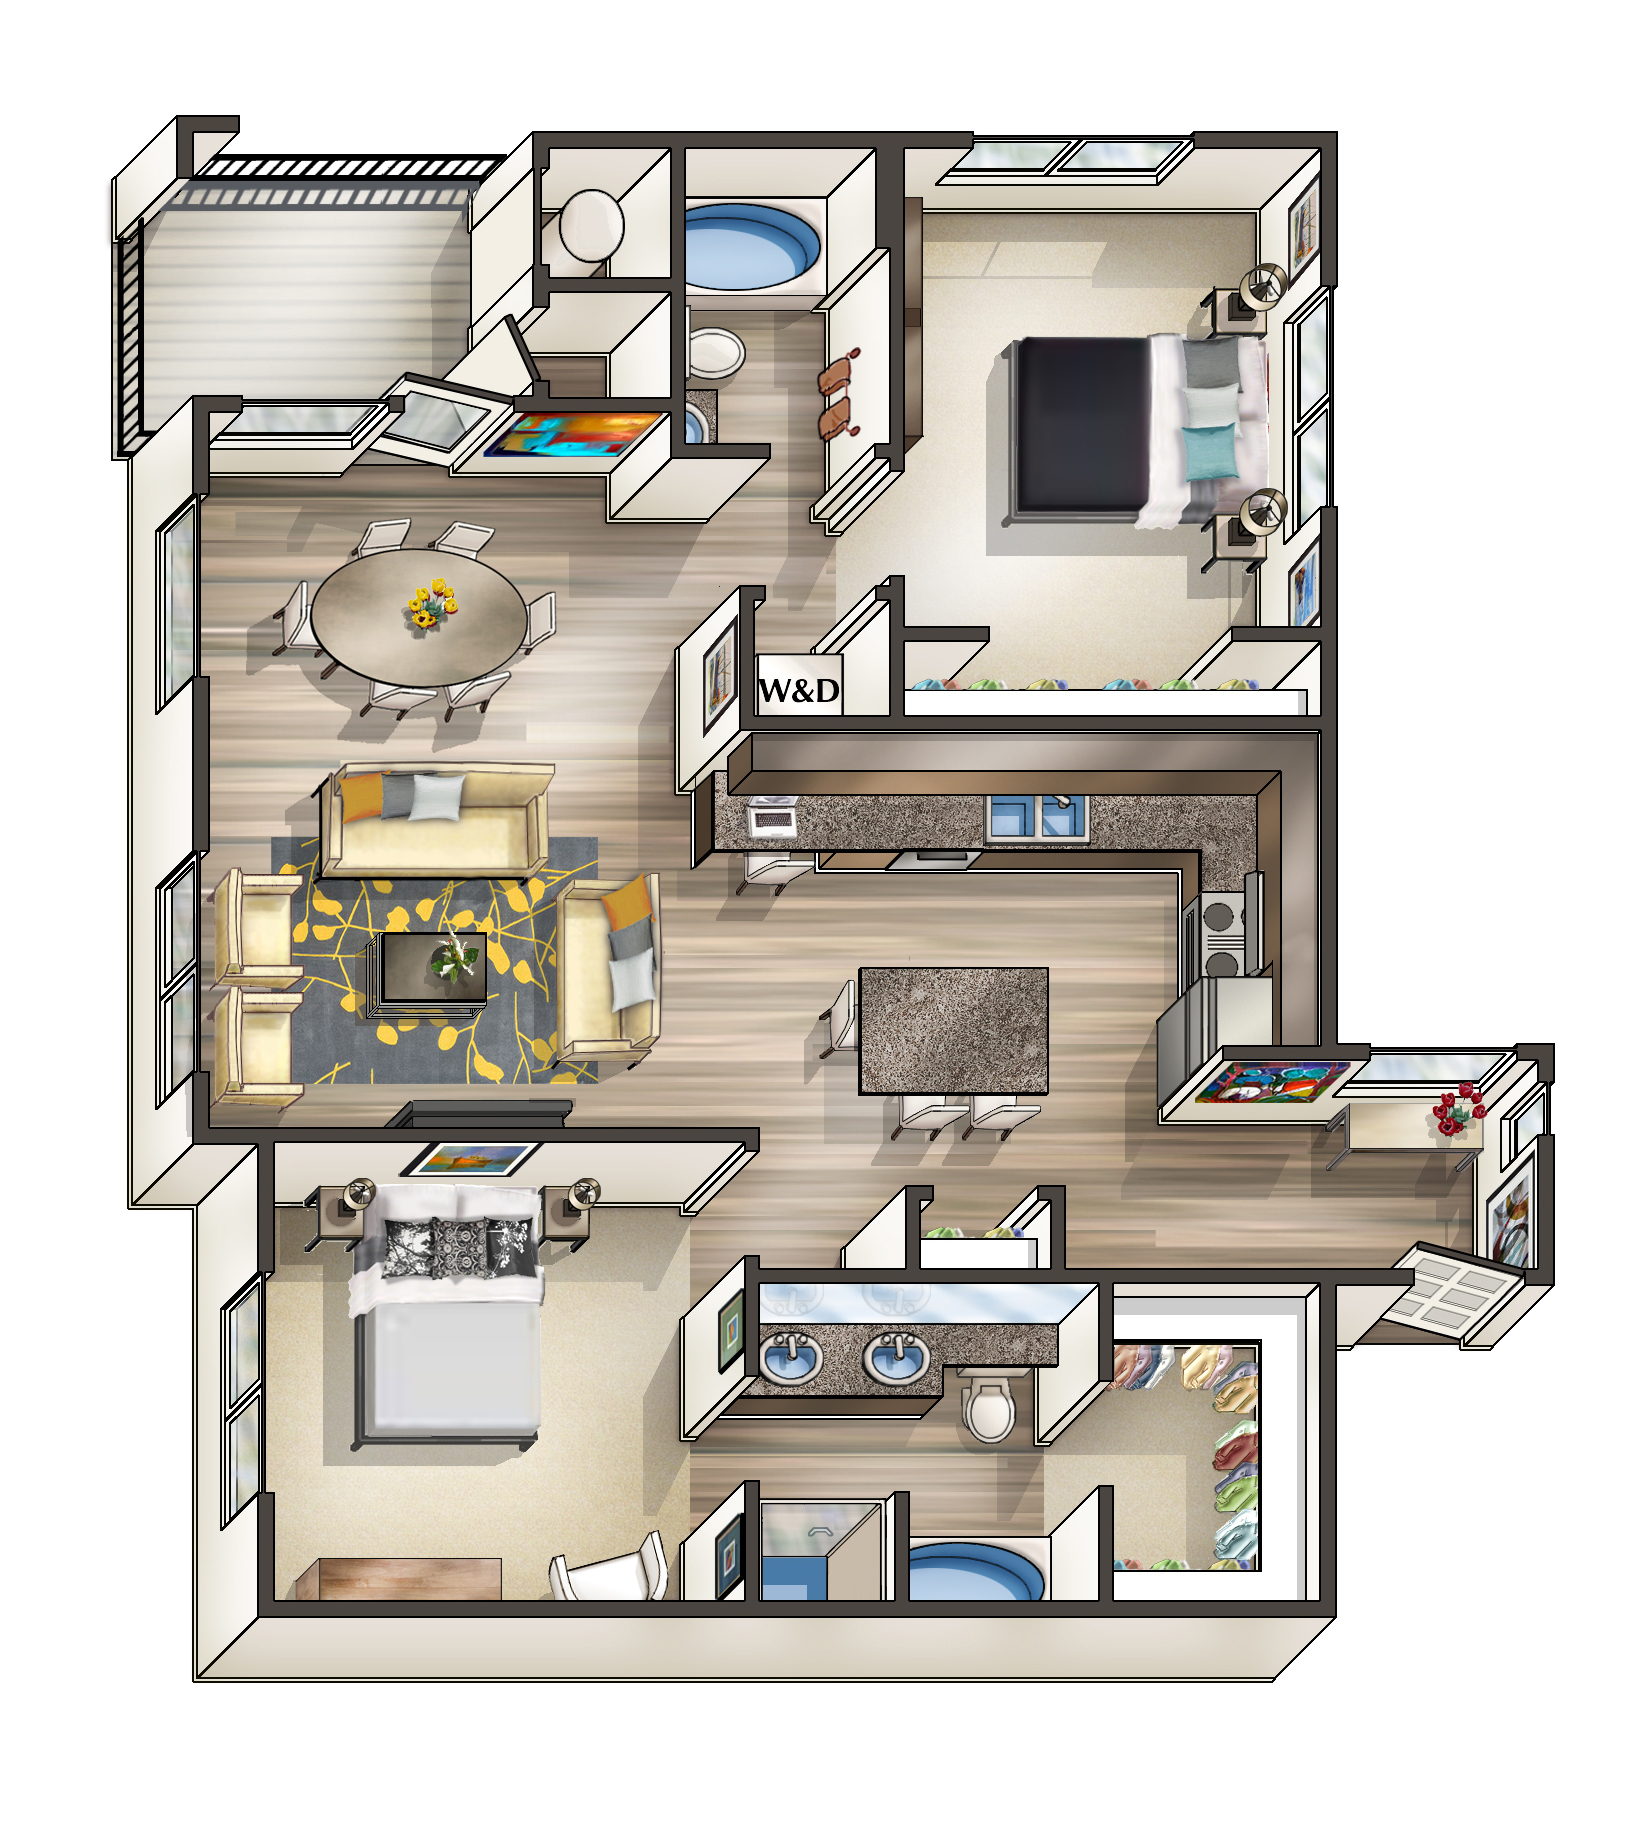 Studio apartment floor plans 400 sq ft for Small apartment layout ideas